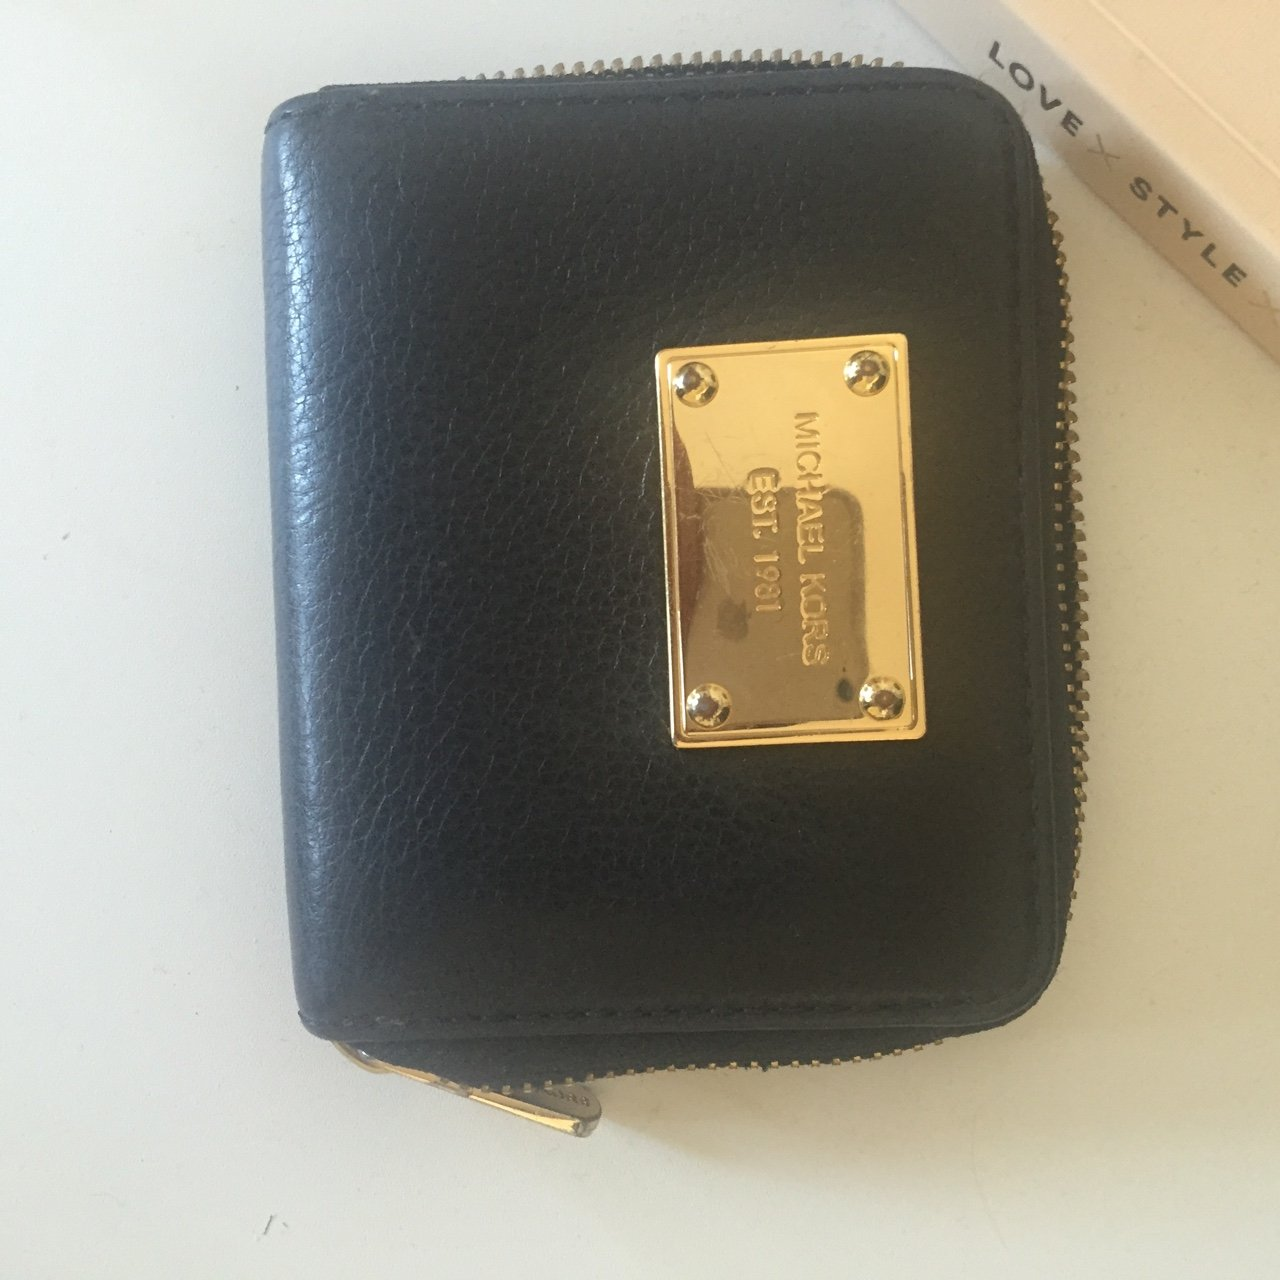 c8a71c374590 @michellevex. FollowingFollow. 24 days ago. London, UK. Michael Kors wallet  in black leather with gold ...